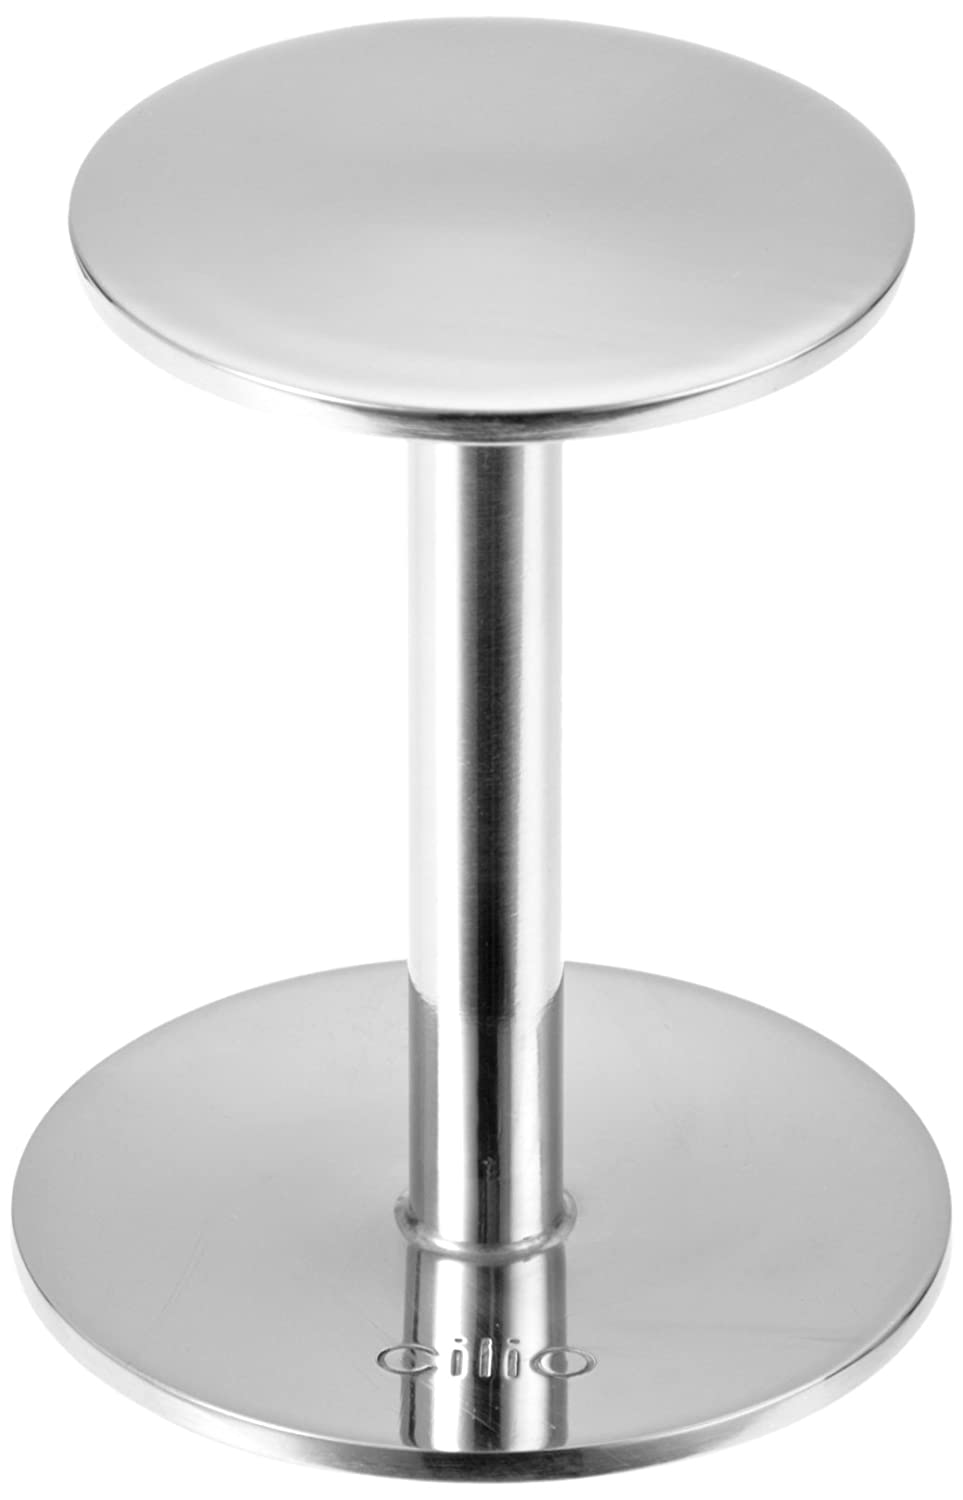 Cilio: Premium Espresso Tamper/Press/Stamp in Stainless Steel with Double Heads 200522